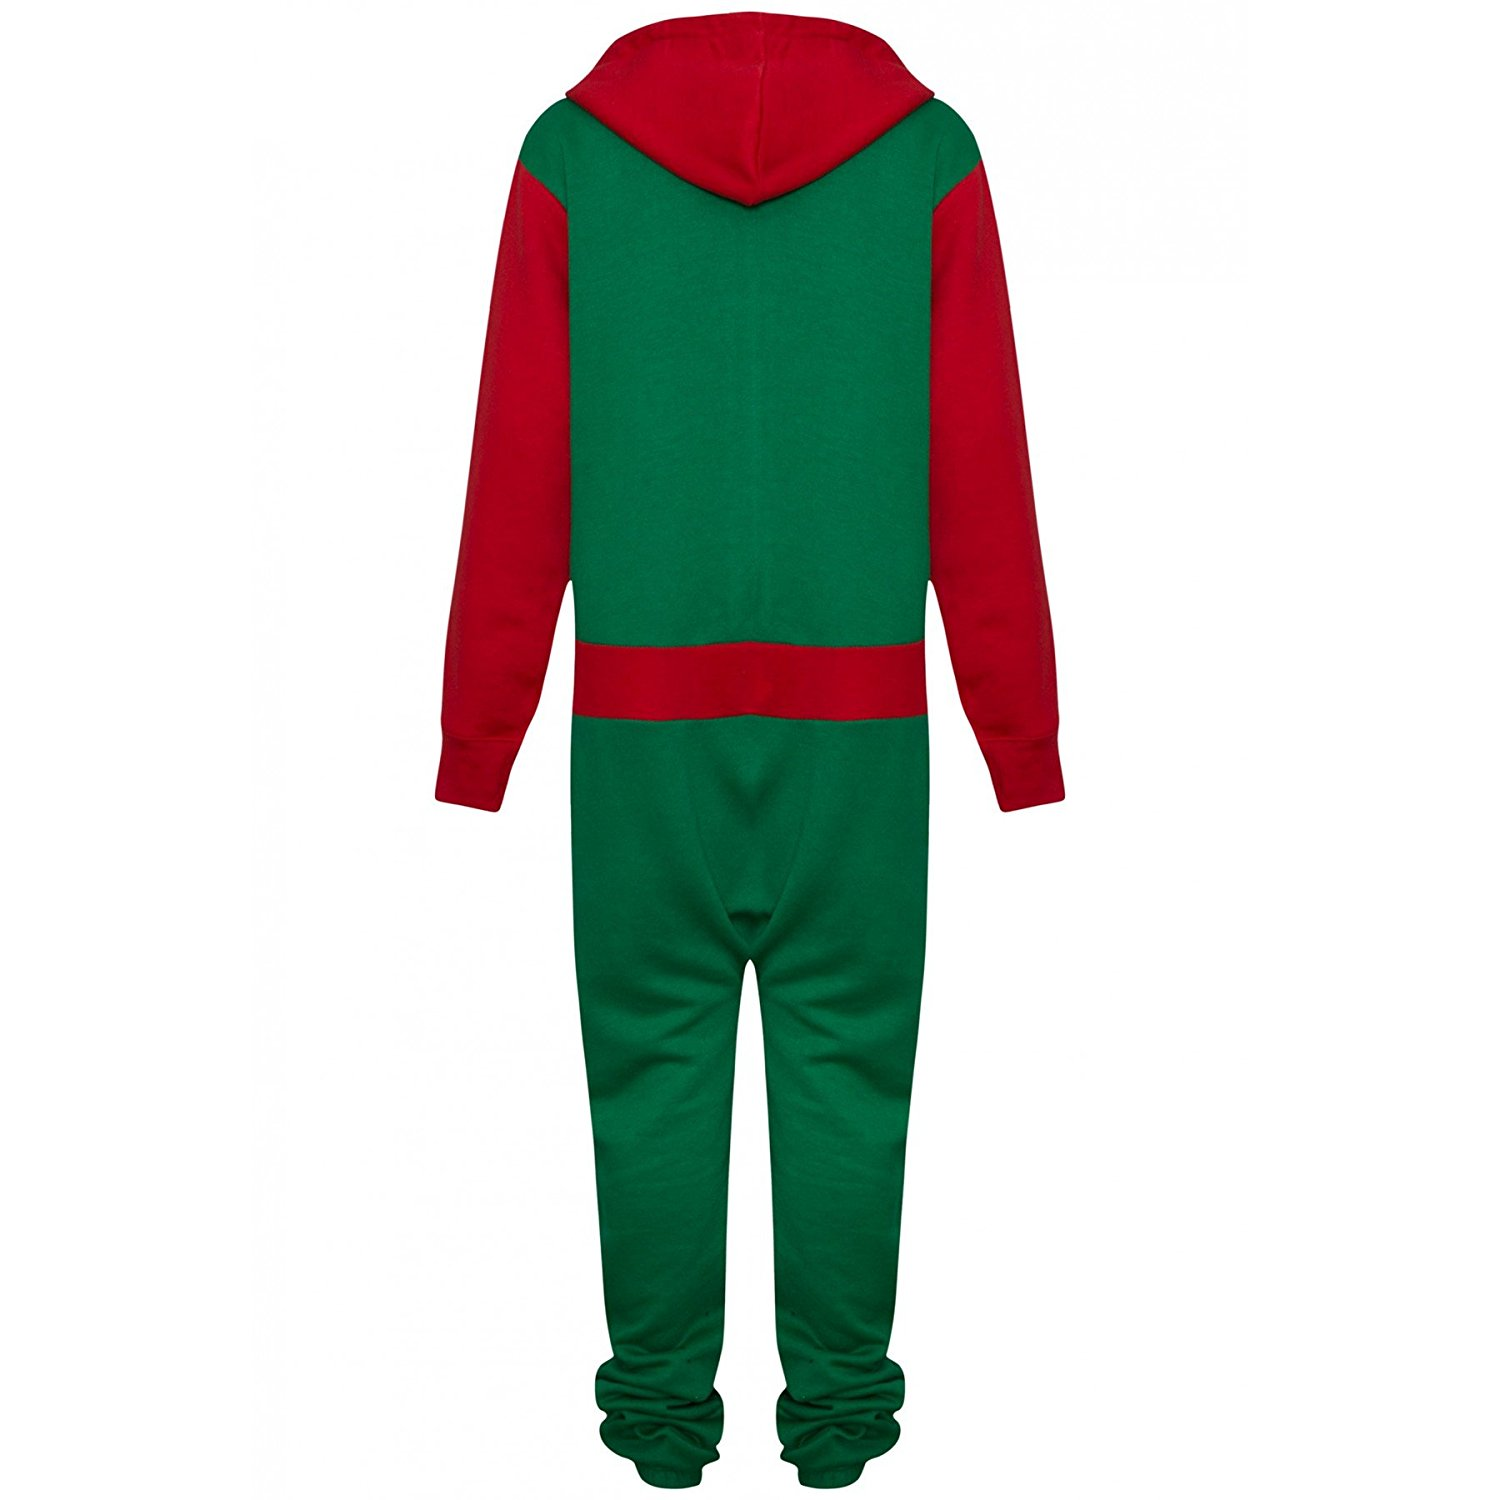 855635a6ad8 adult teen footed pajamas for men women onesie pajamas for adults ...